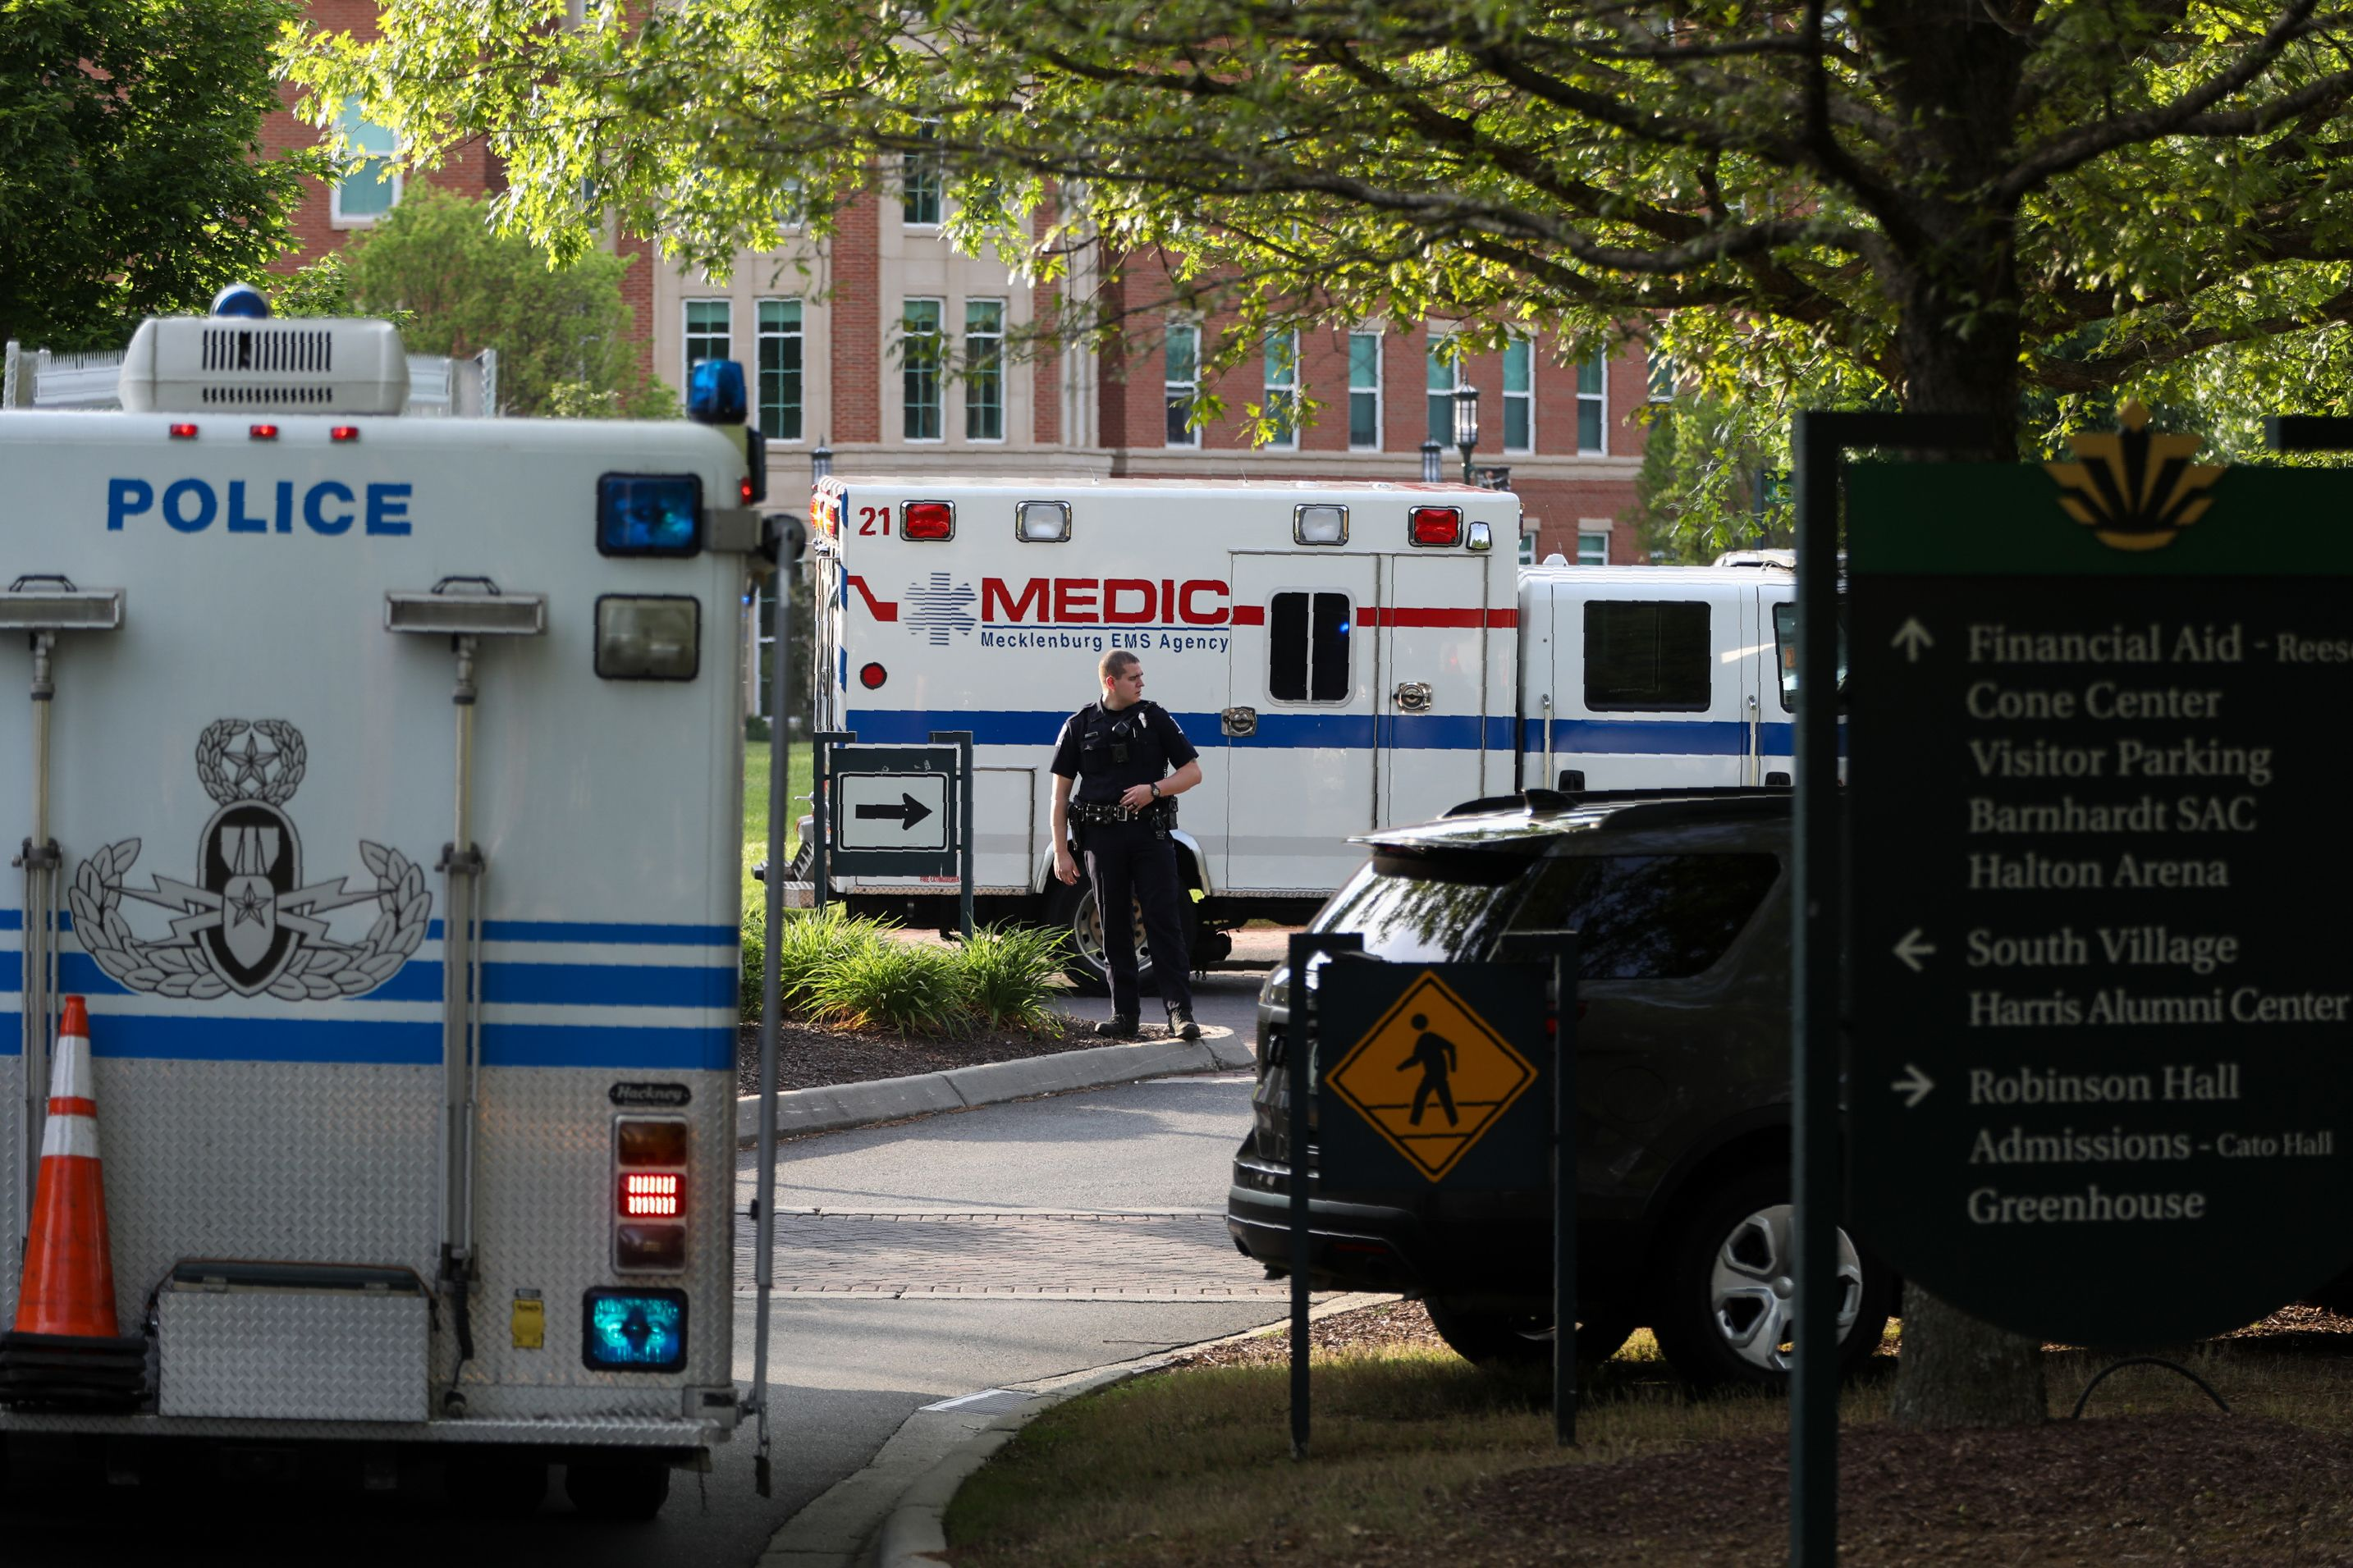 University of North Carolina at Charlotte shooting: what we know